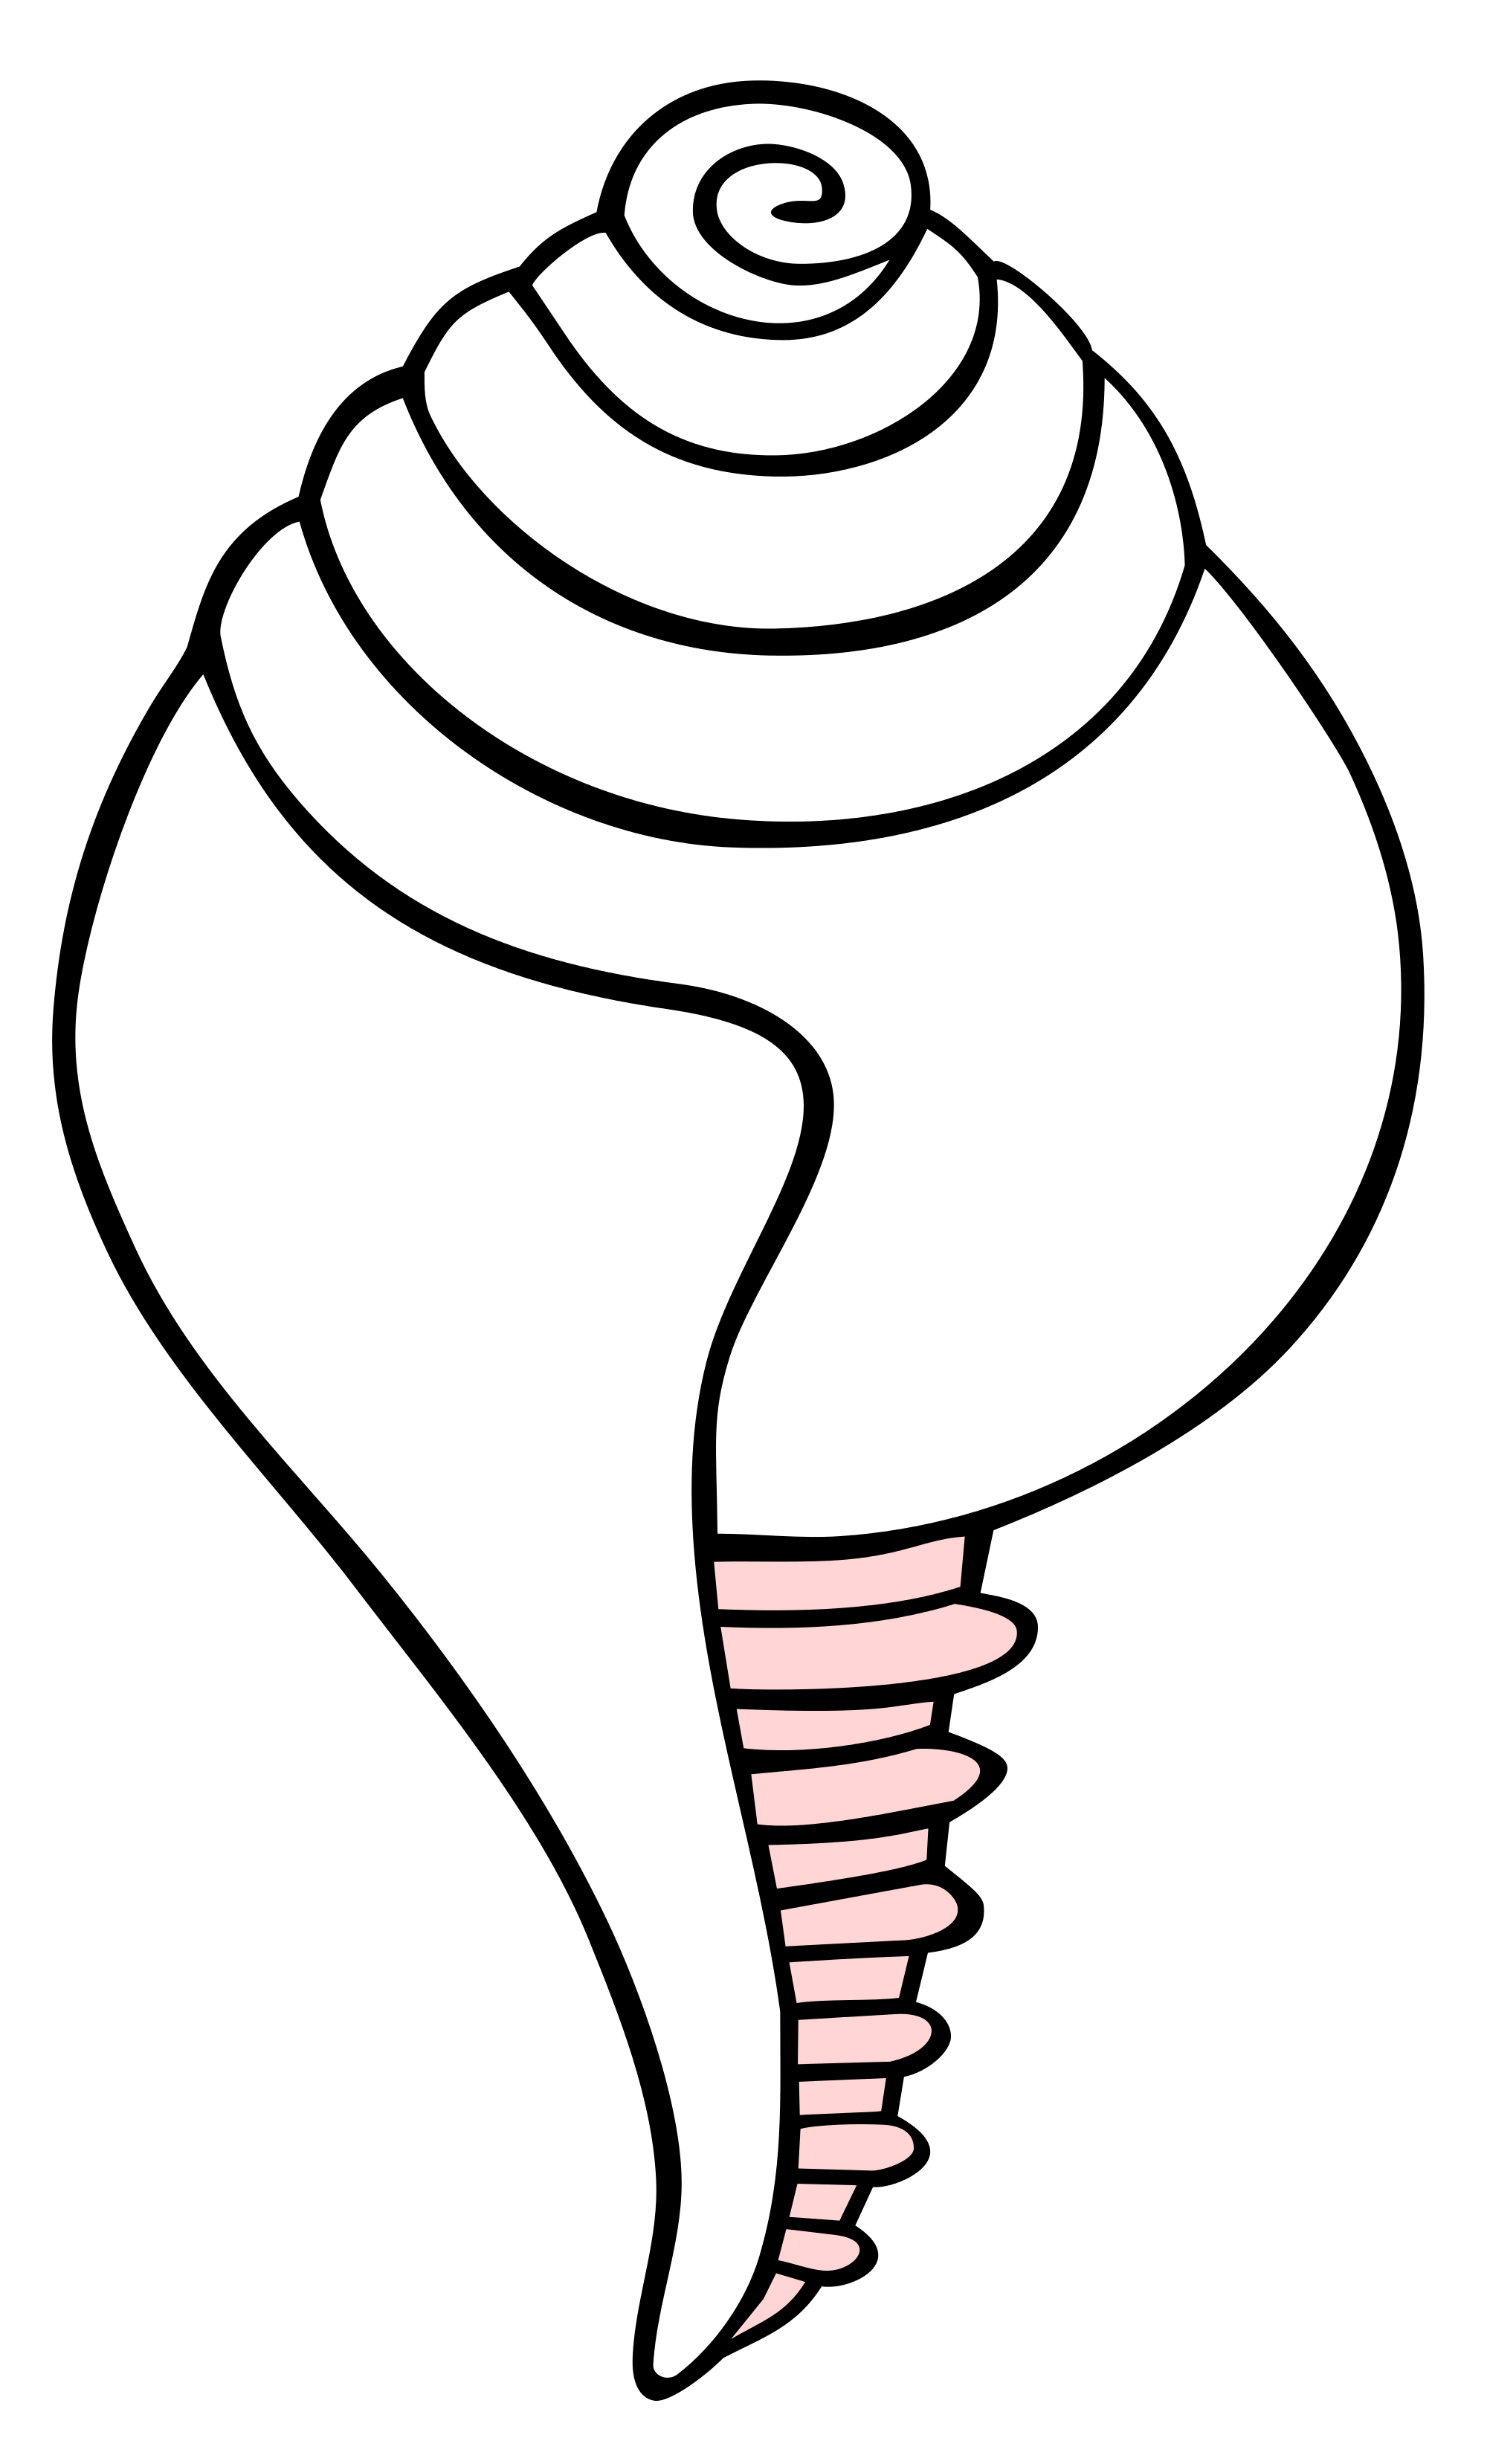 clip art library download Conch at getdrawings com. Waffles drawing easy